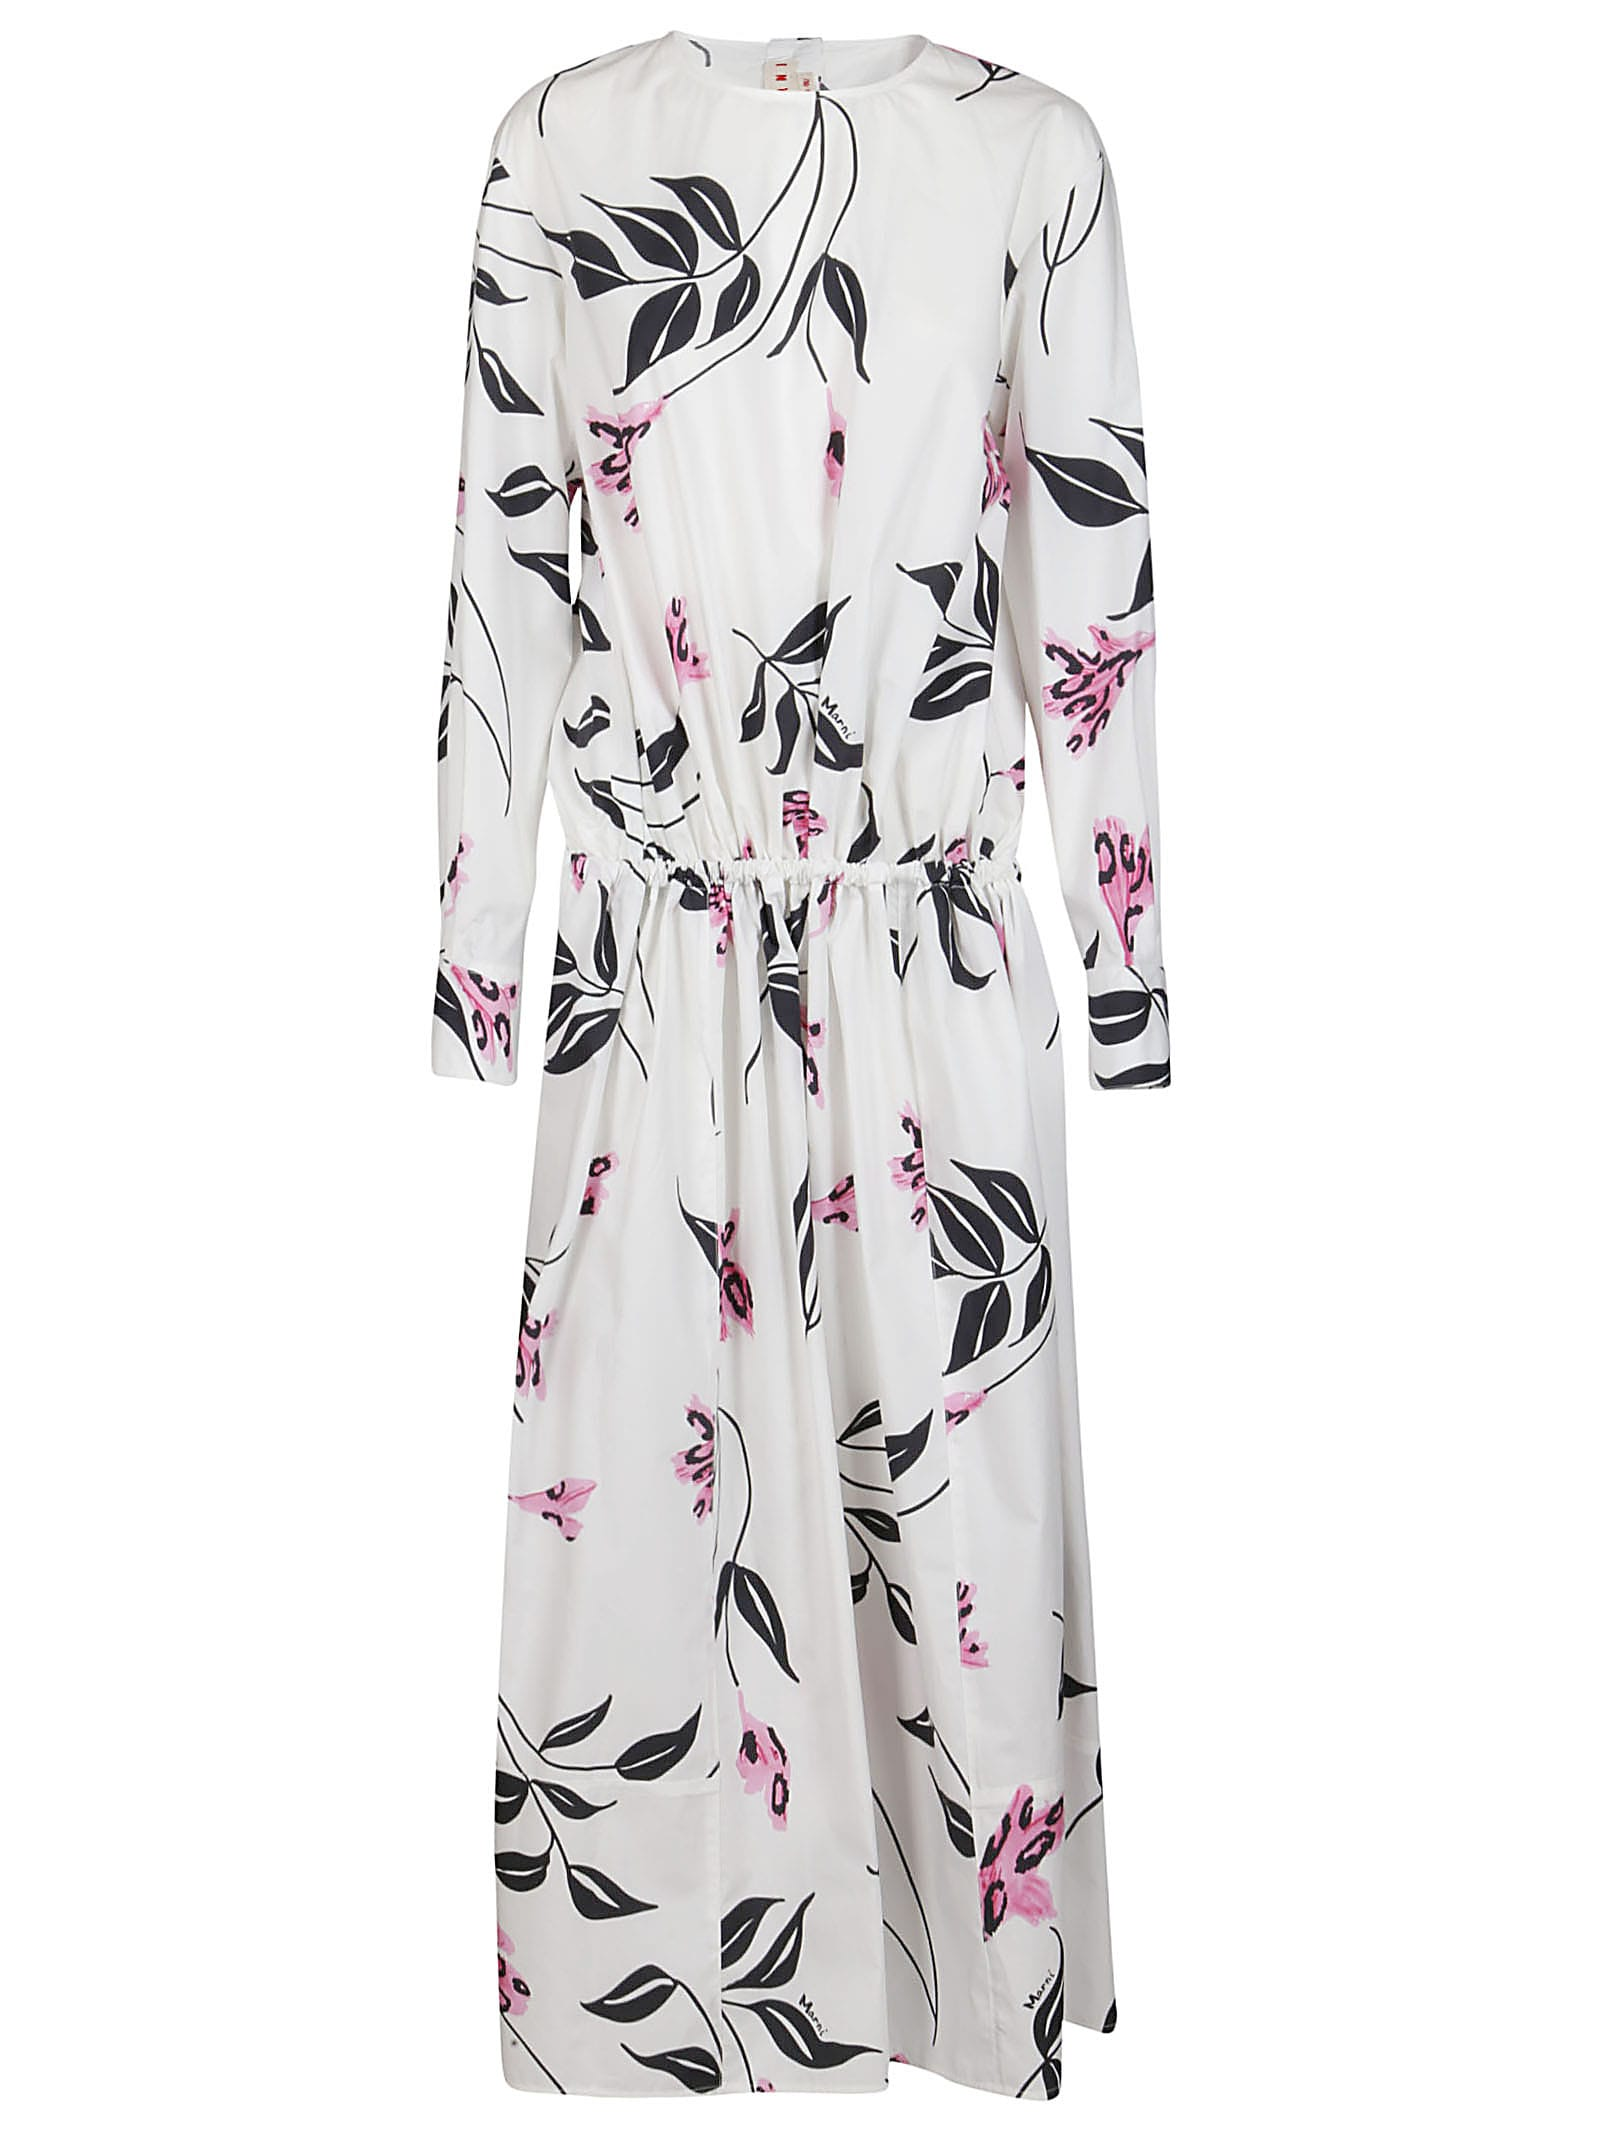 Marni WHITE COTTON DRESS